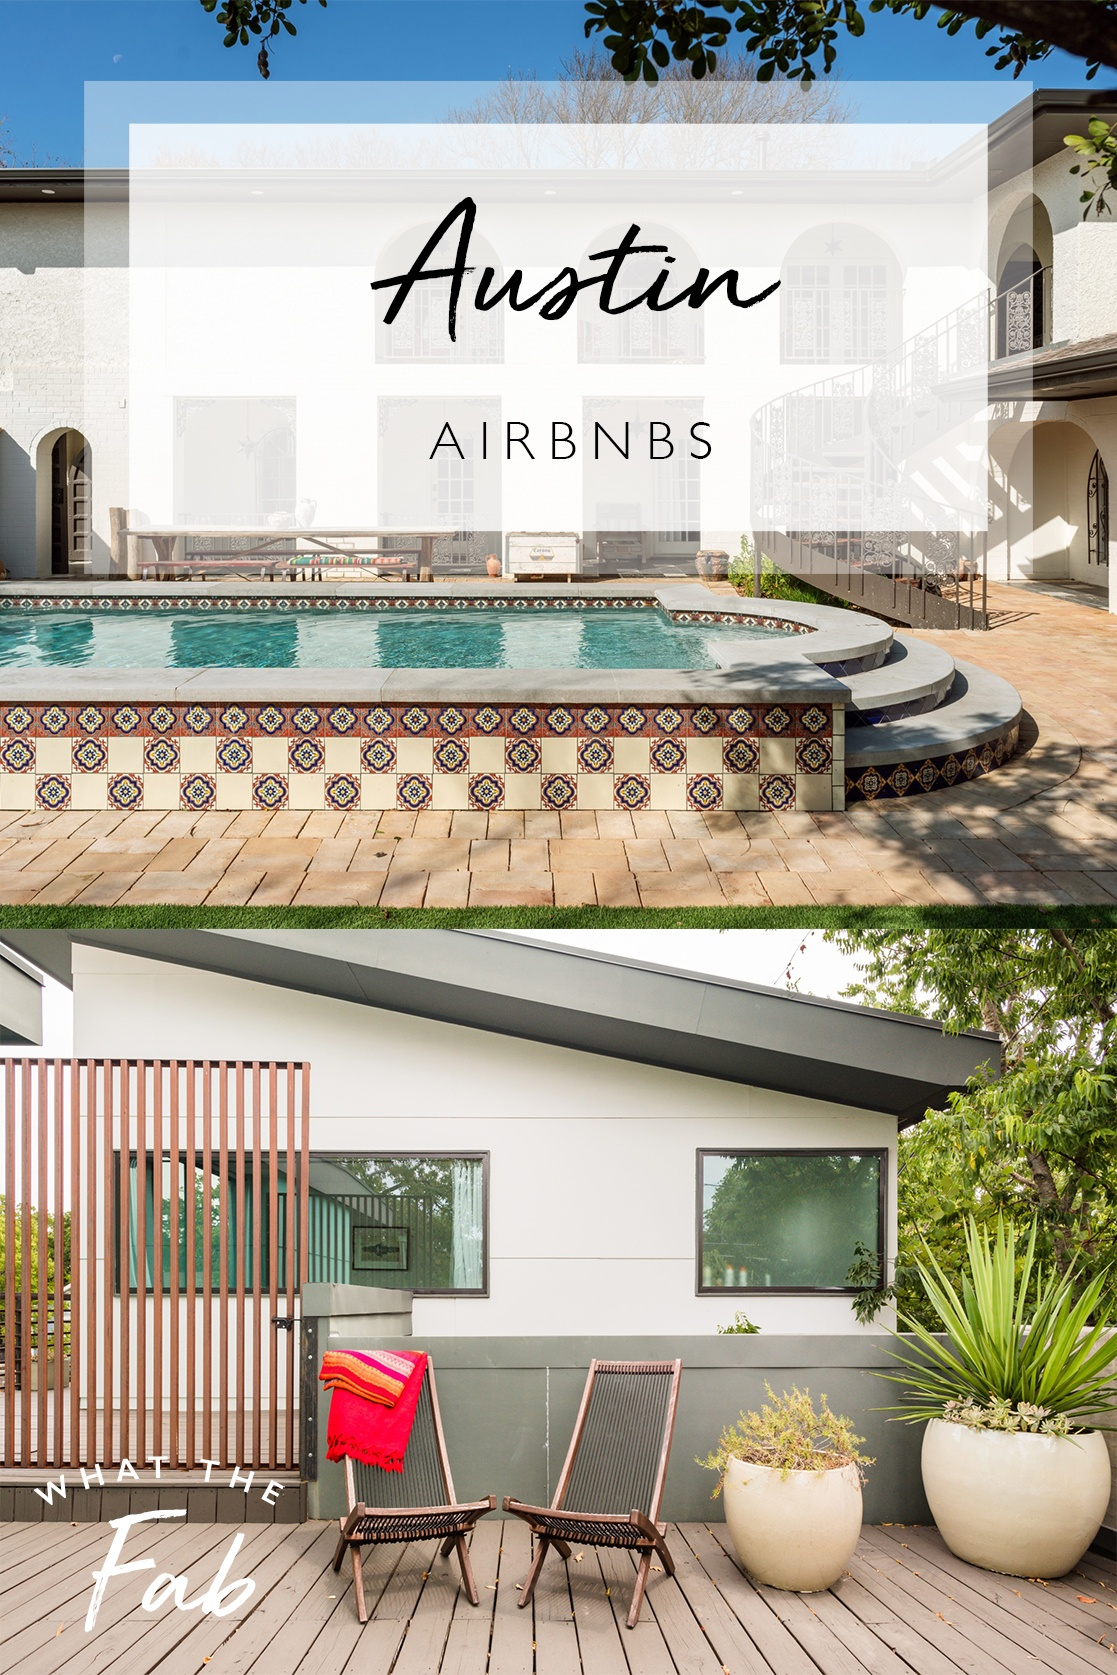 austin airbnbs, by travel blogger What The Fab